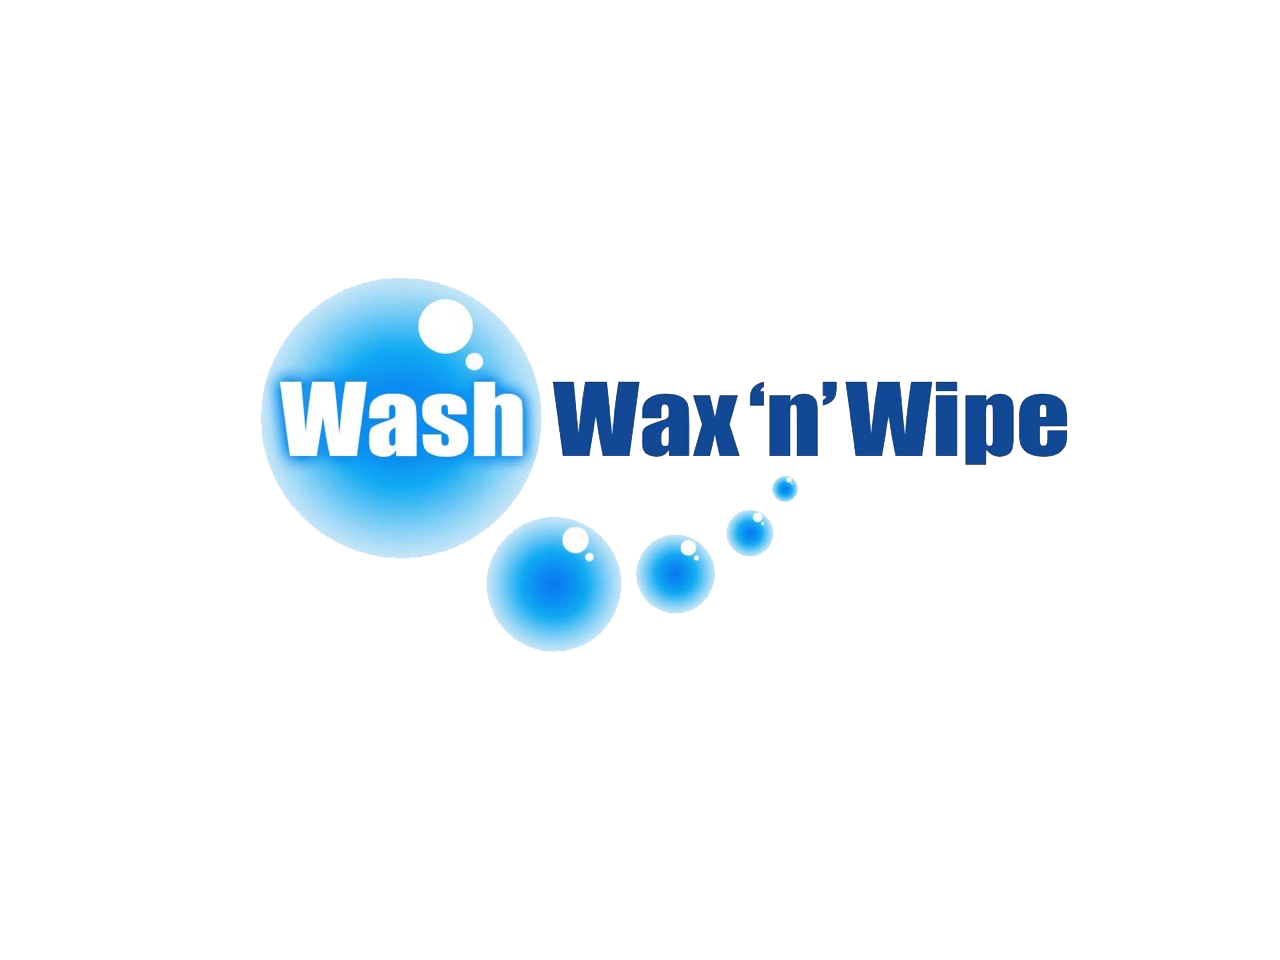 Wash Wax 'n' Wipe